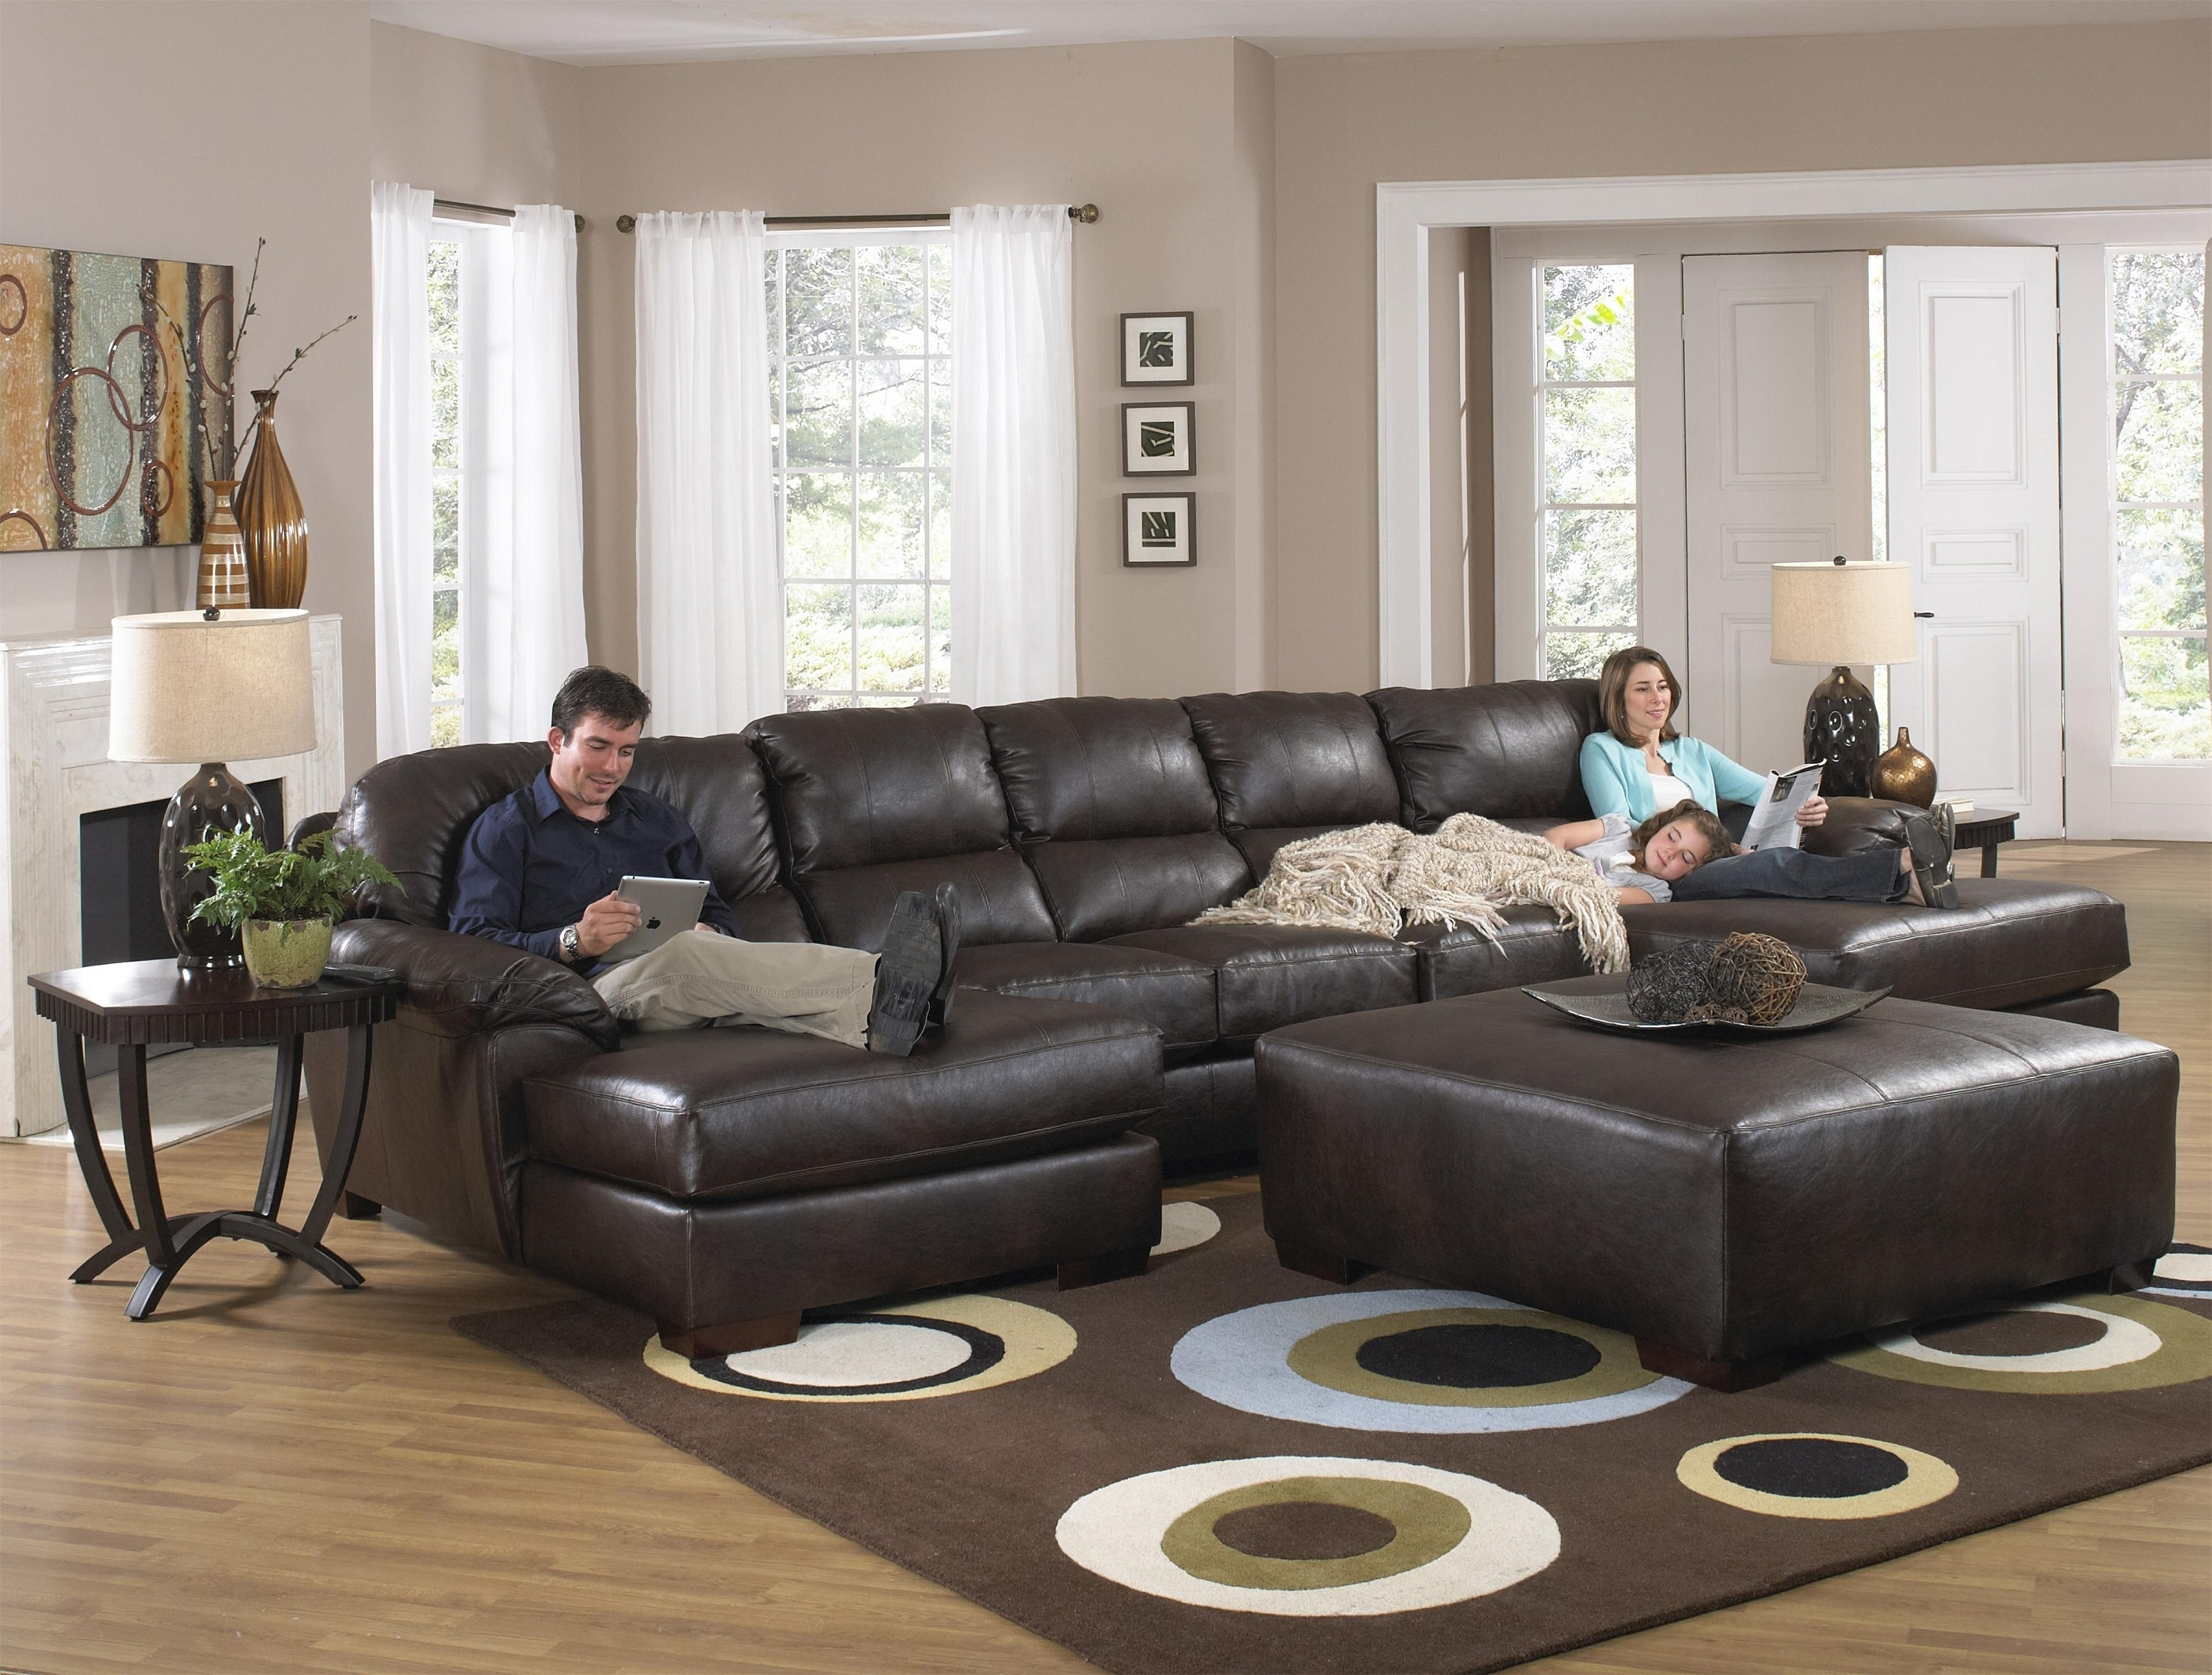 Sofa : Sofa Pit Chair Fabulous Wrought Iron Chaise Lounge Extra Intended For Well Known Pittsburgh Sectional Sofas (View 11 of 15)